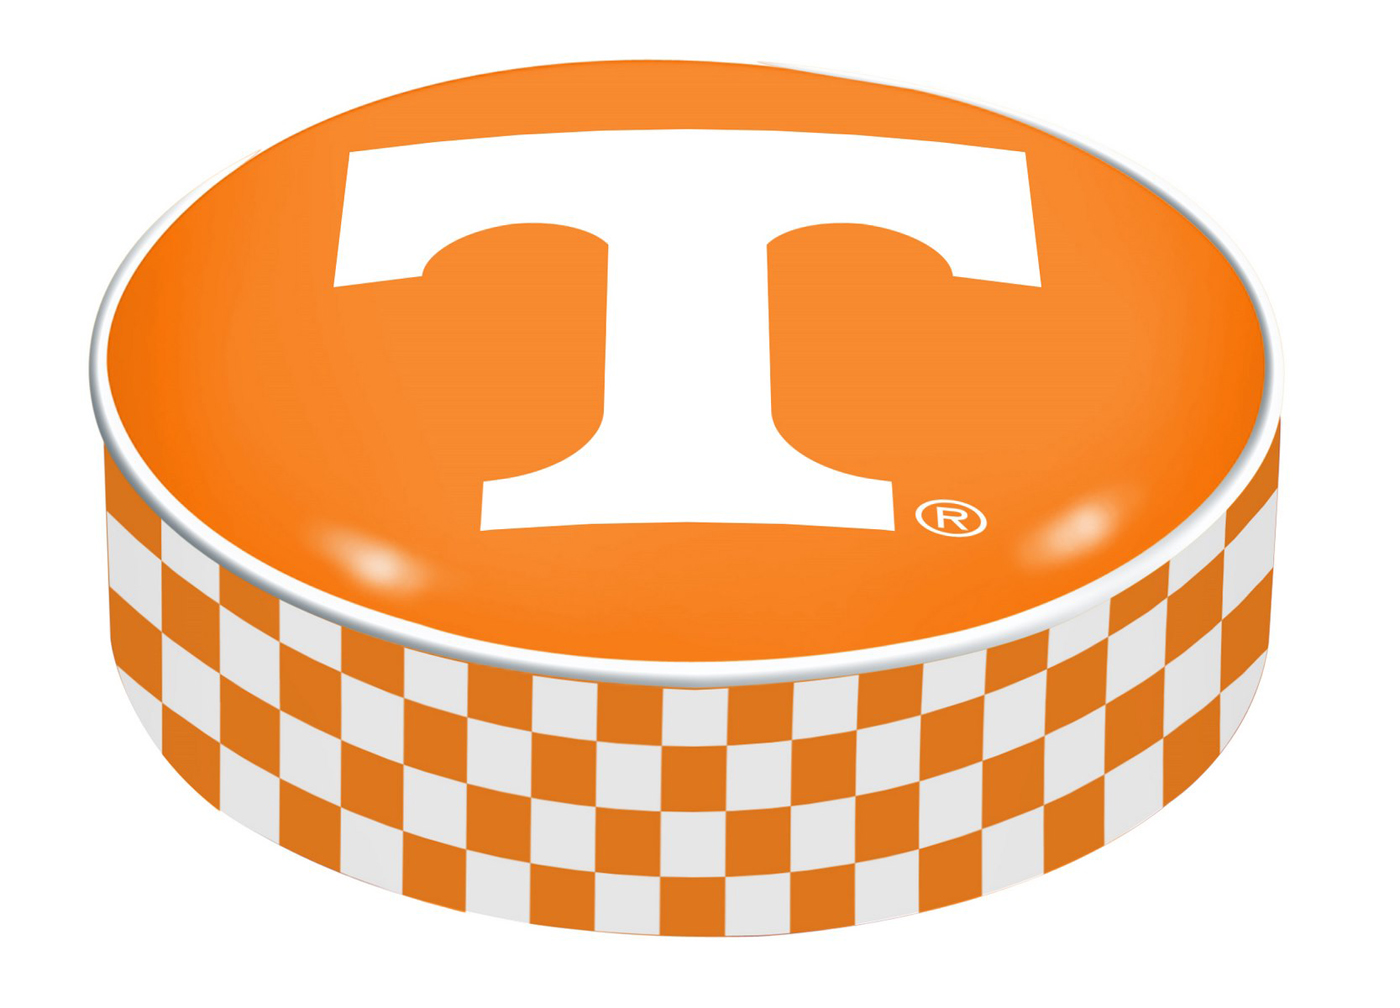 Tennessee Volunteers Bar Stool Seat Cover : tennessee volunteers bar stool seat covermainProductImageFull from sportsunlimitedinc.com size 1000 x 833 jpeg 142kB